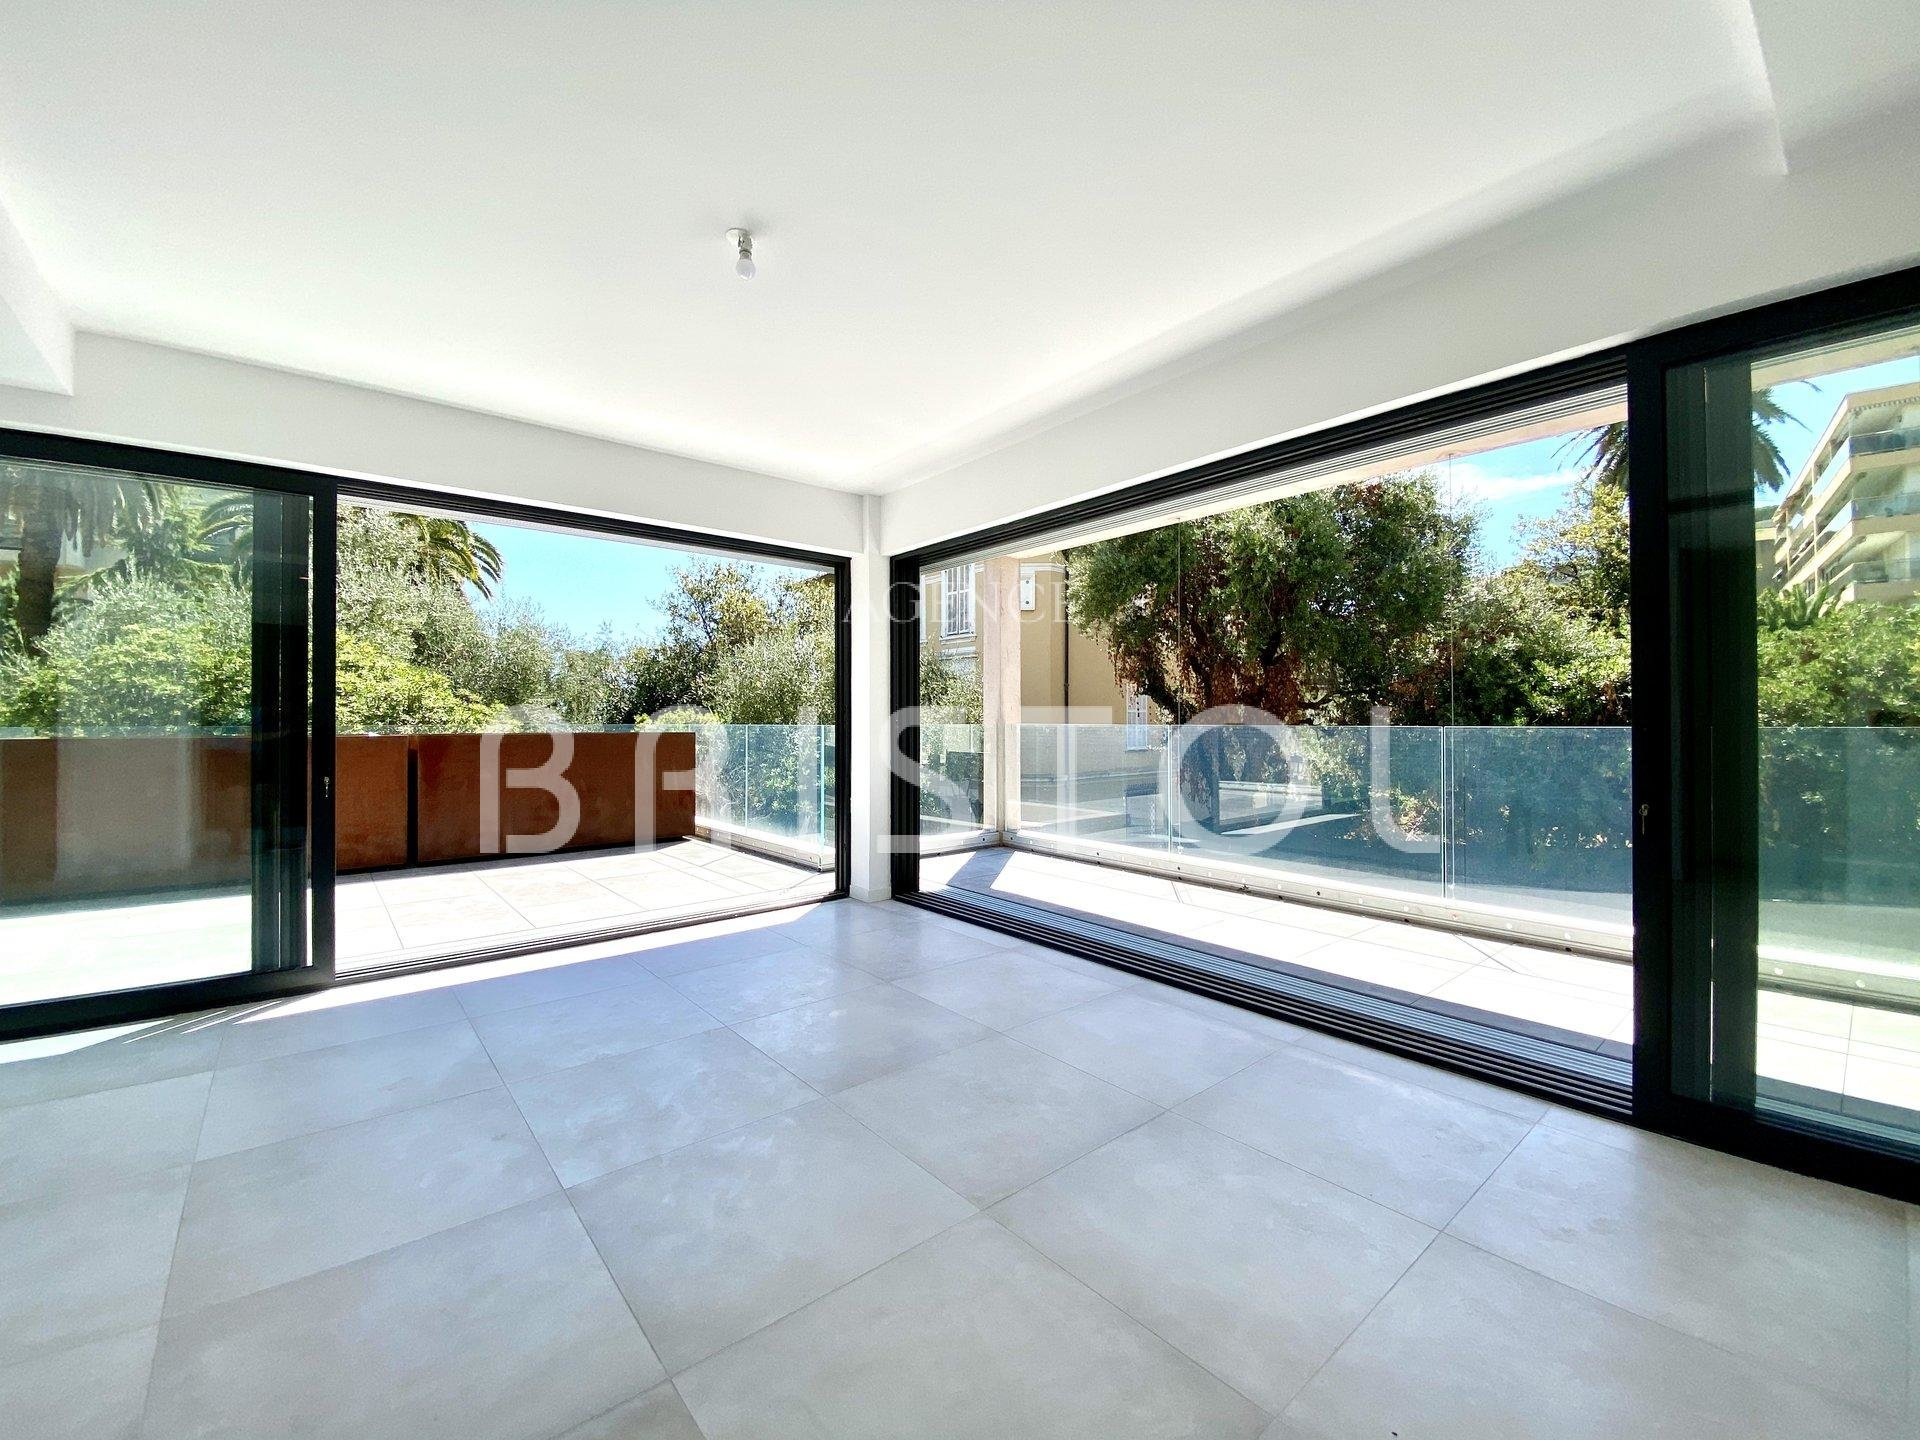 Brand new development  - luxury 2 bedrooms apartment in Beaulieu sur Mer